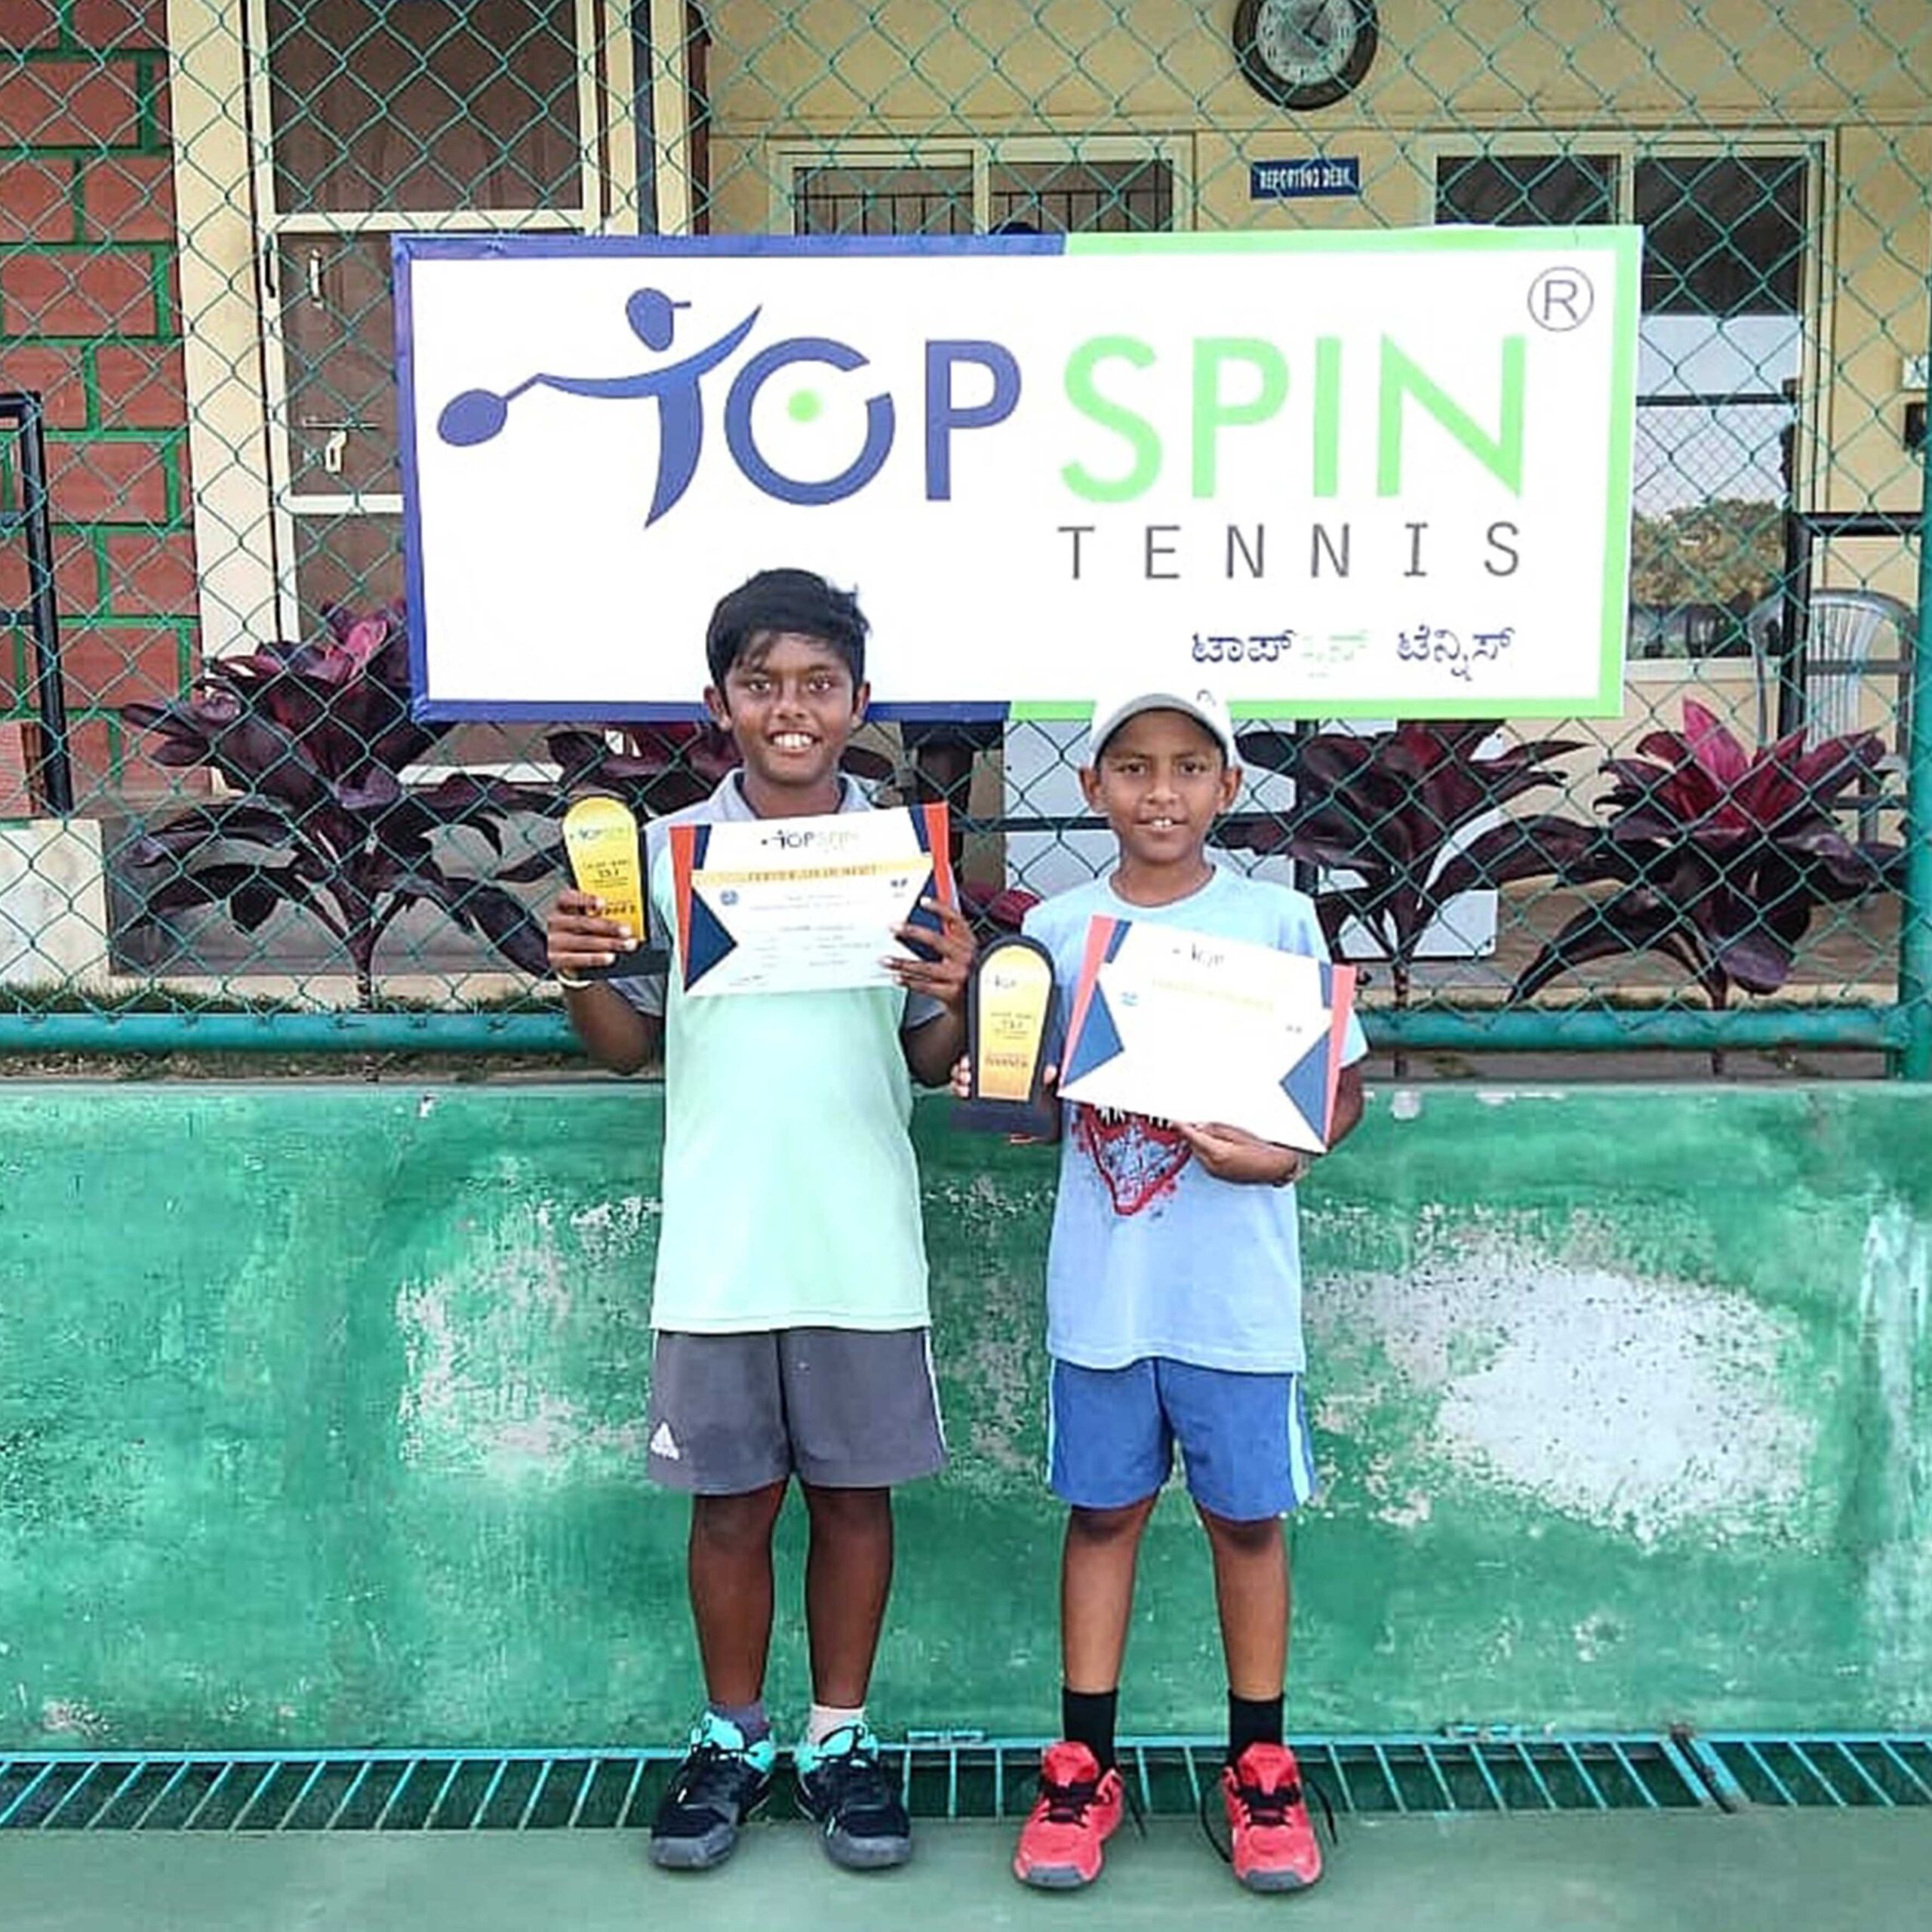 Anurag and Meer -  Winner U12 TS Boys Doubles at TopSpin Tennis